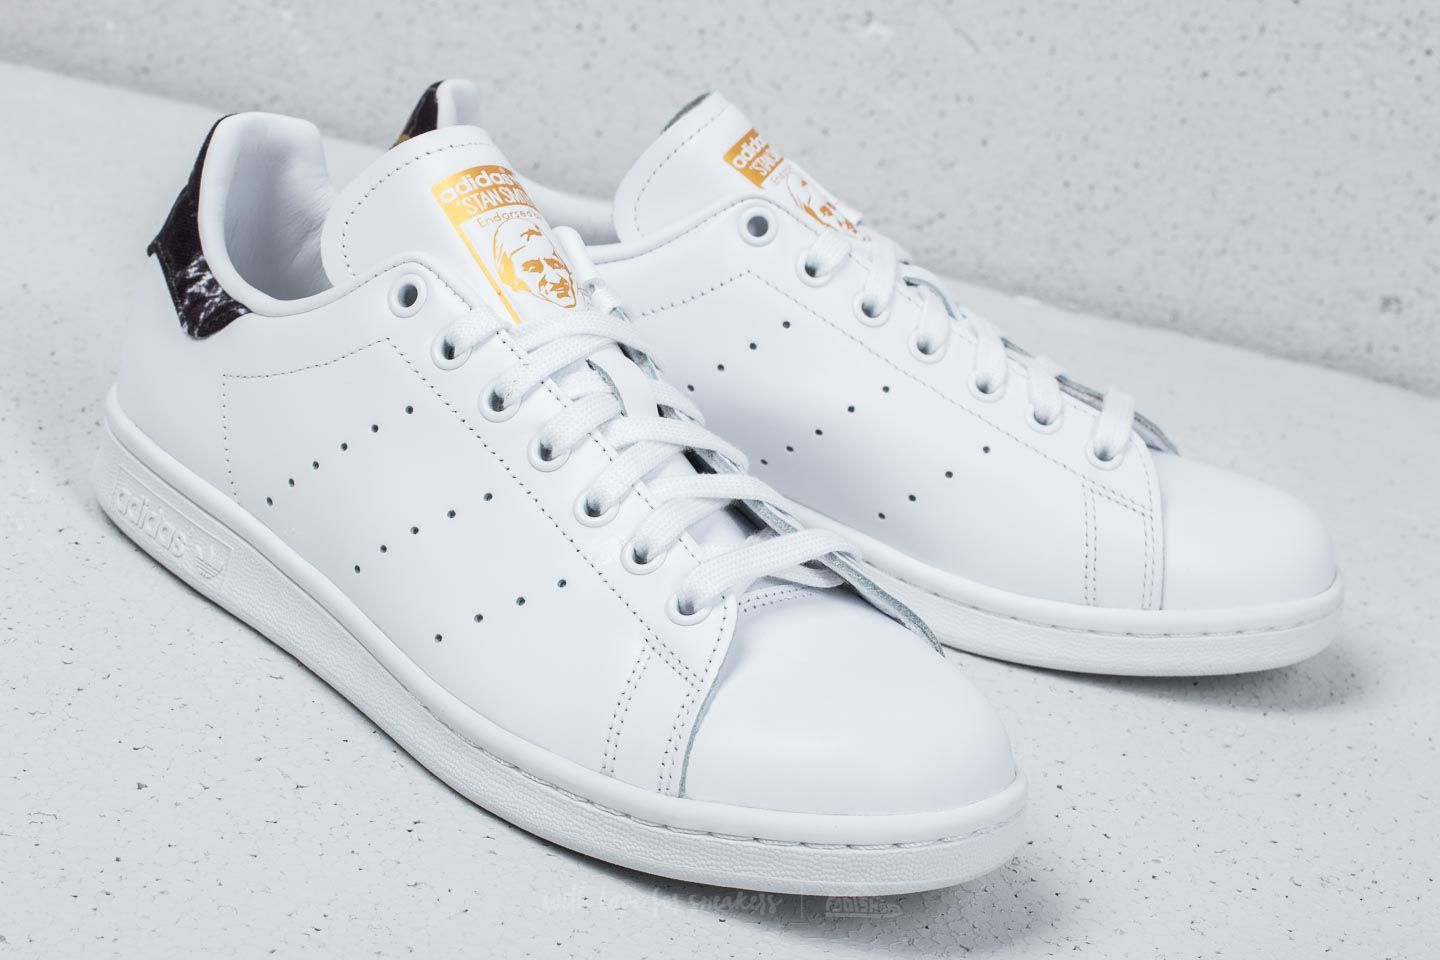 Adidas Stan Smith Ftw White Core Black Gold Mint At A Great Price 66